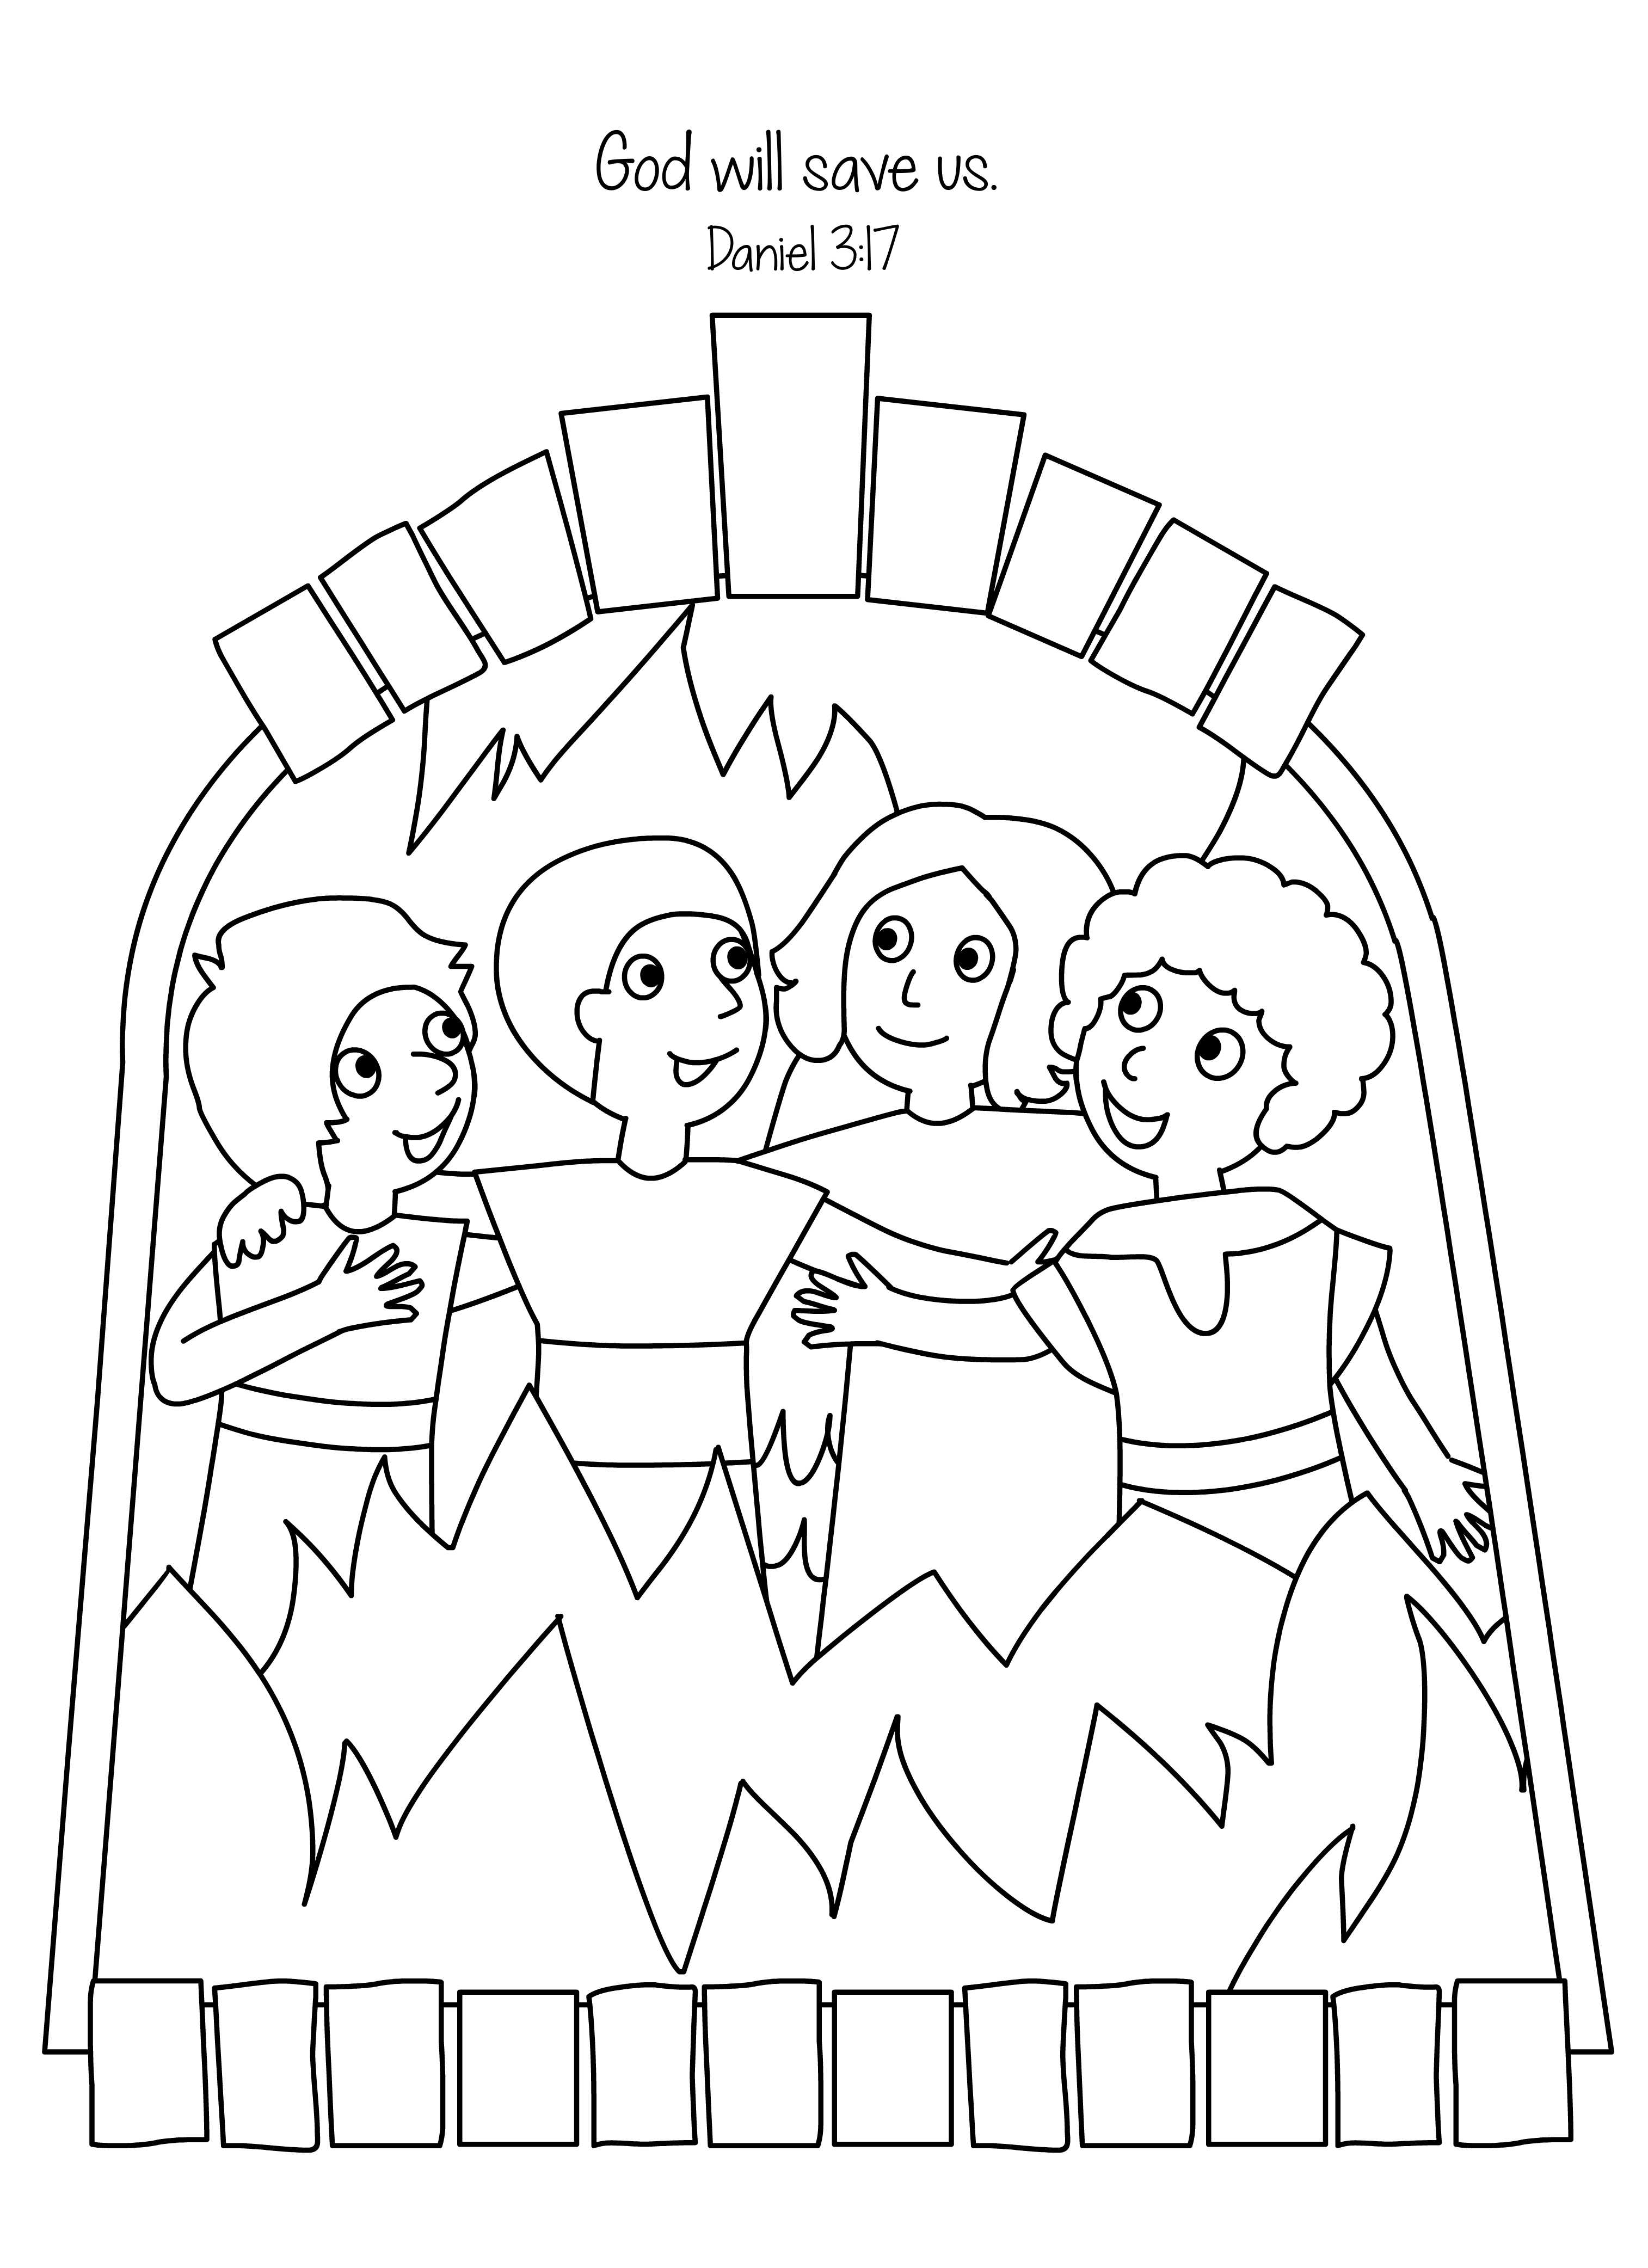 fiery furnace coloring page fiery furnace coloring page coloring pages coloring fiery furnace page